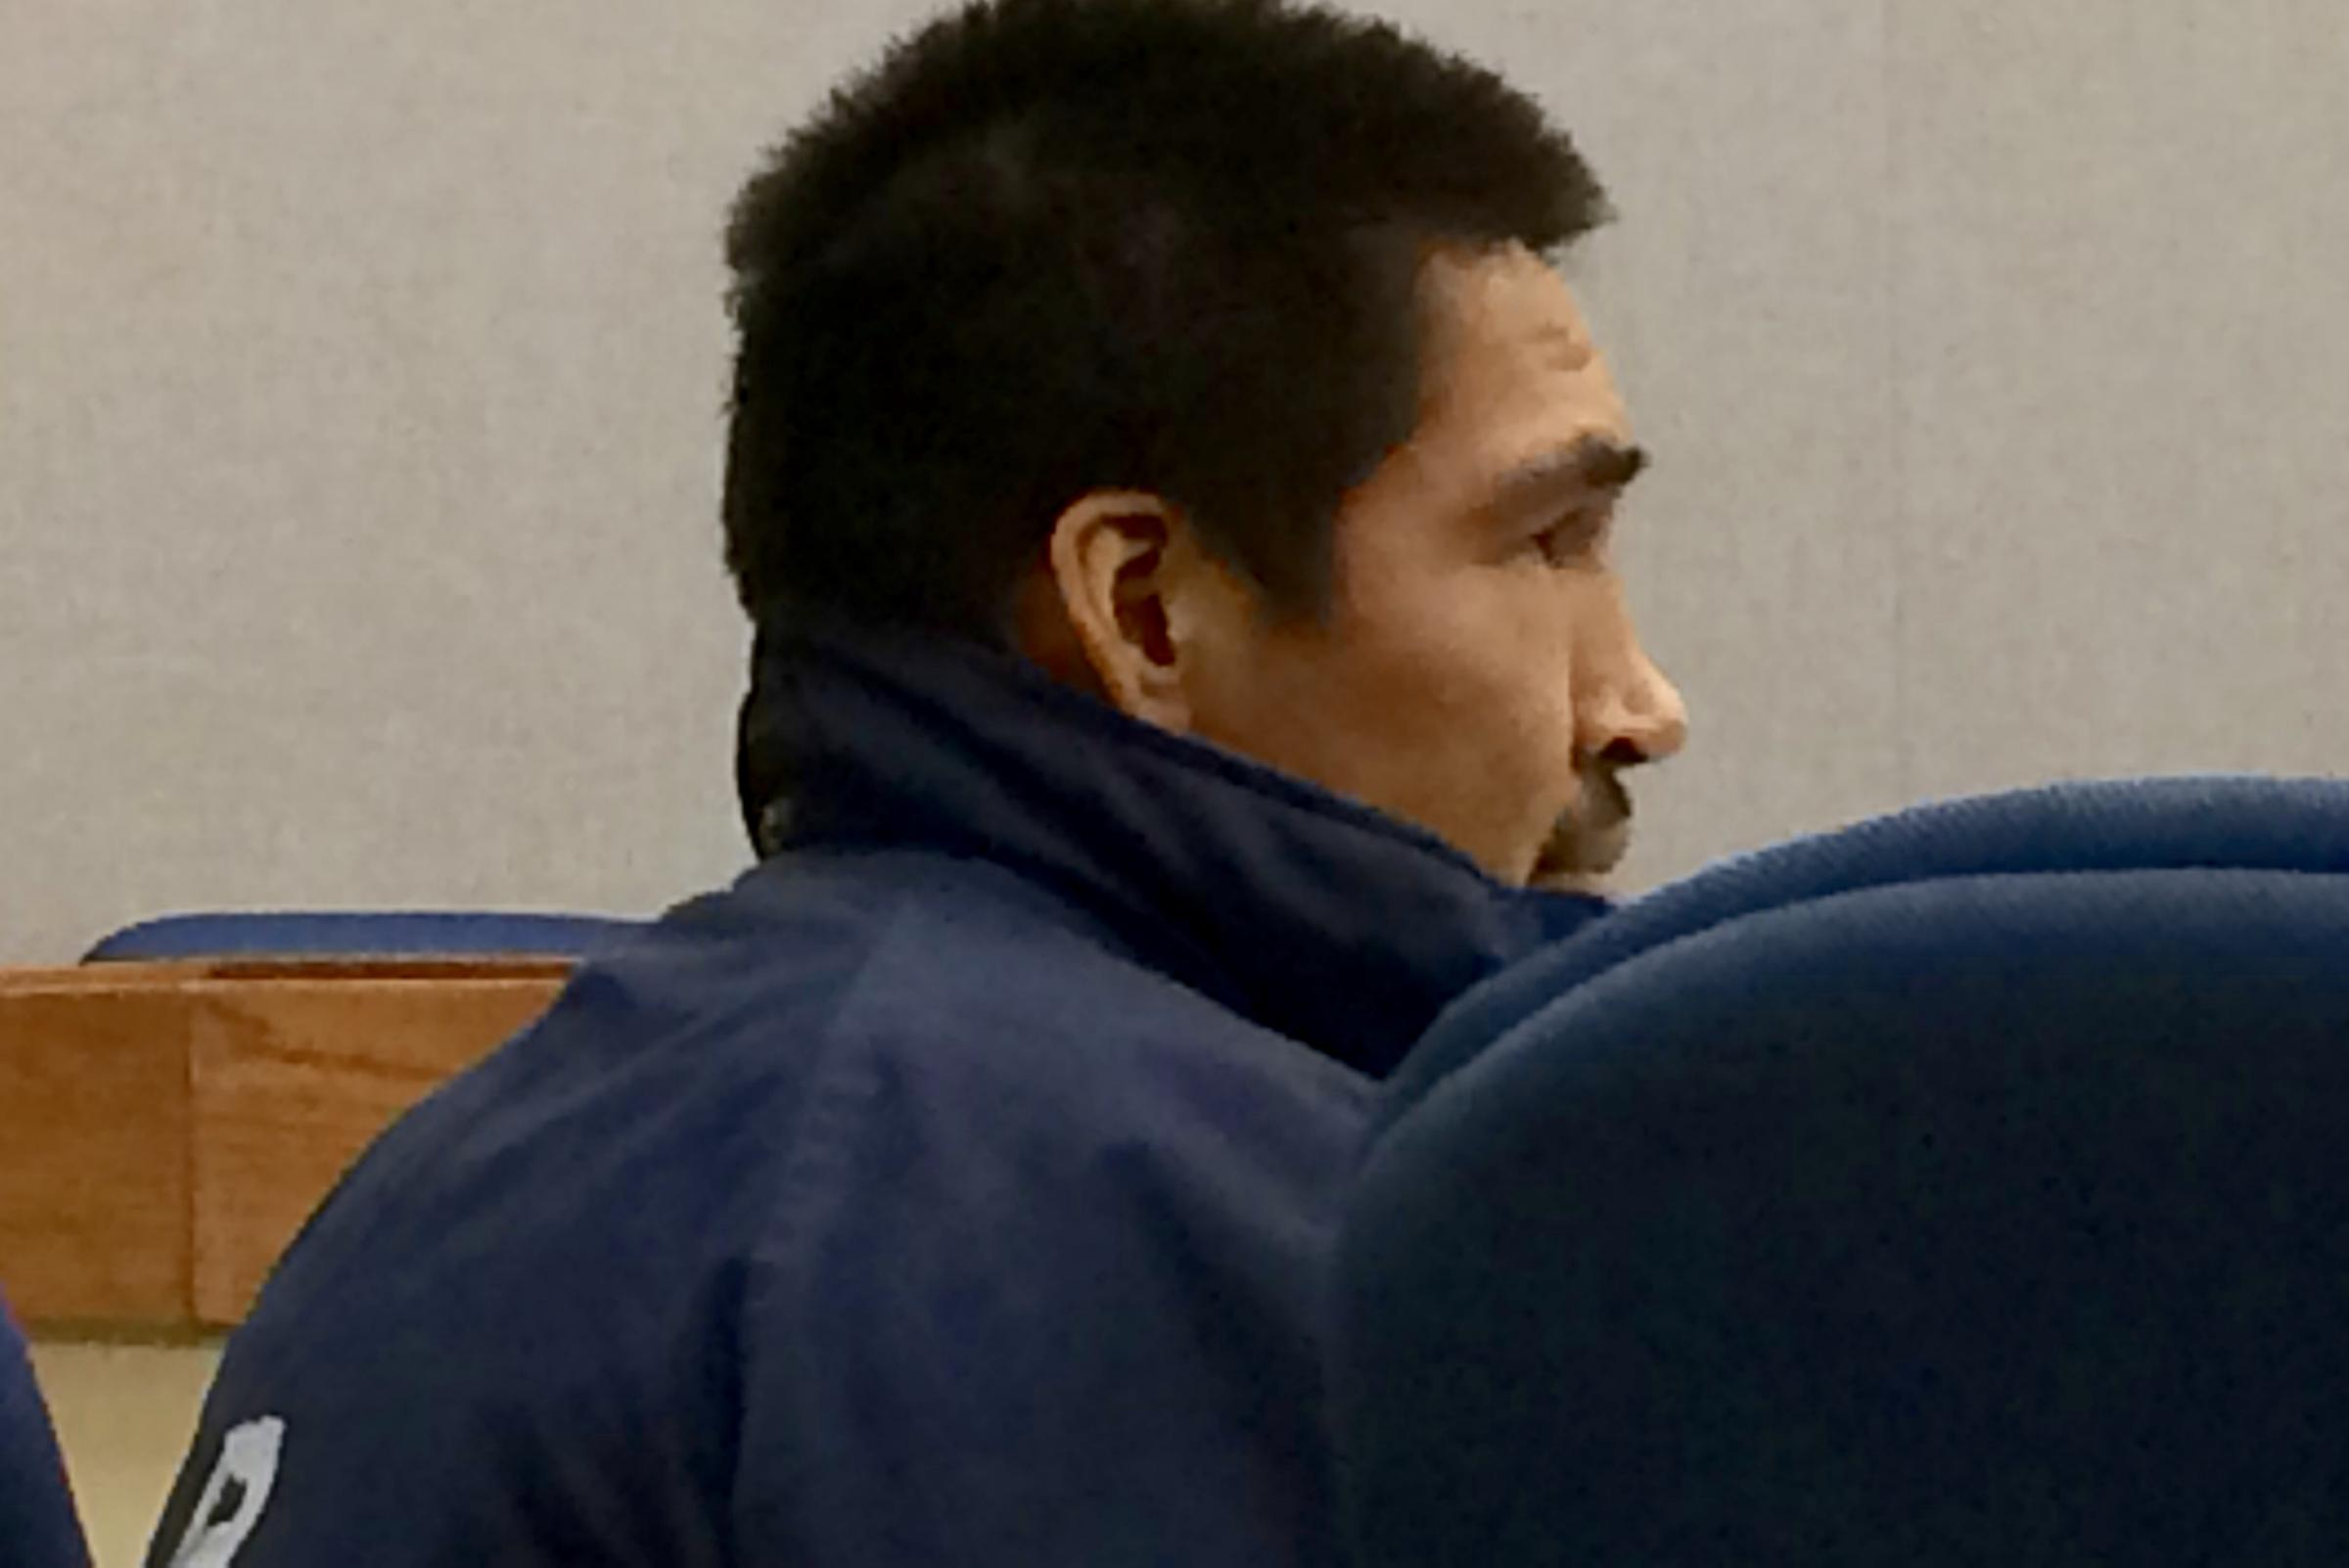 A southwest Alaska man who pleaded guilty to sexually assaulting a female family member will serve three months and be required to register as a sex offender. (Photo by Anna Rose MacArthur/KYUK)